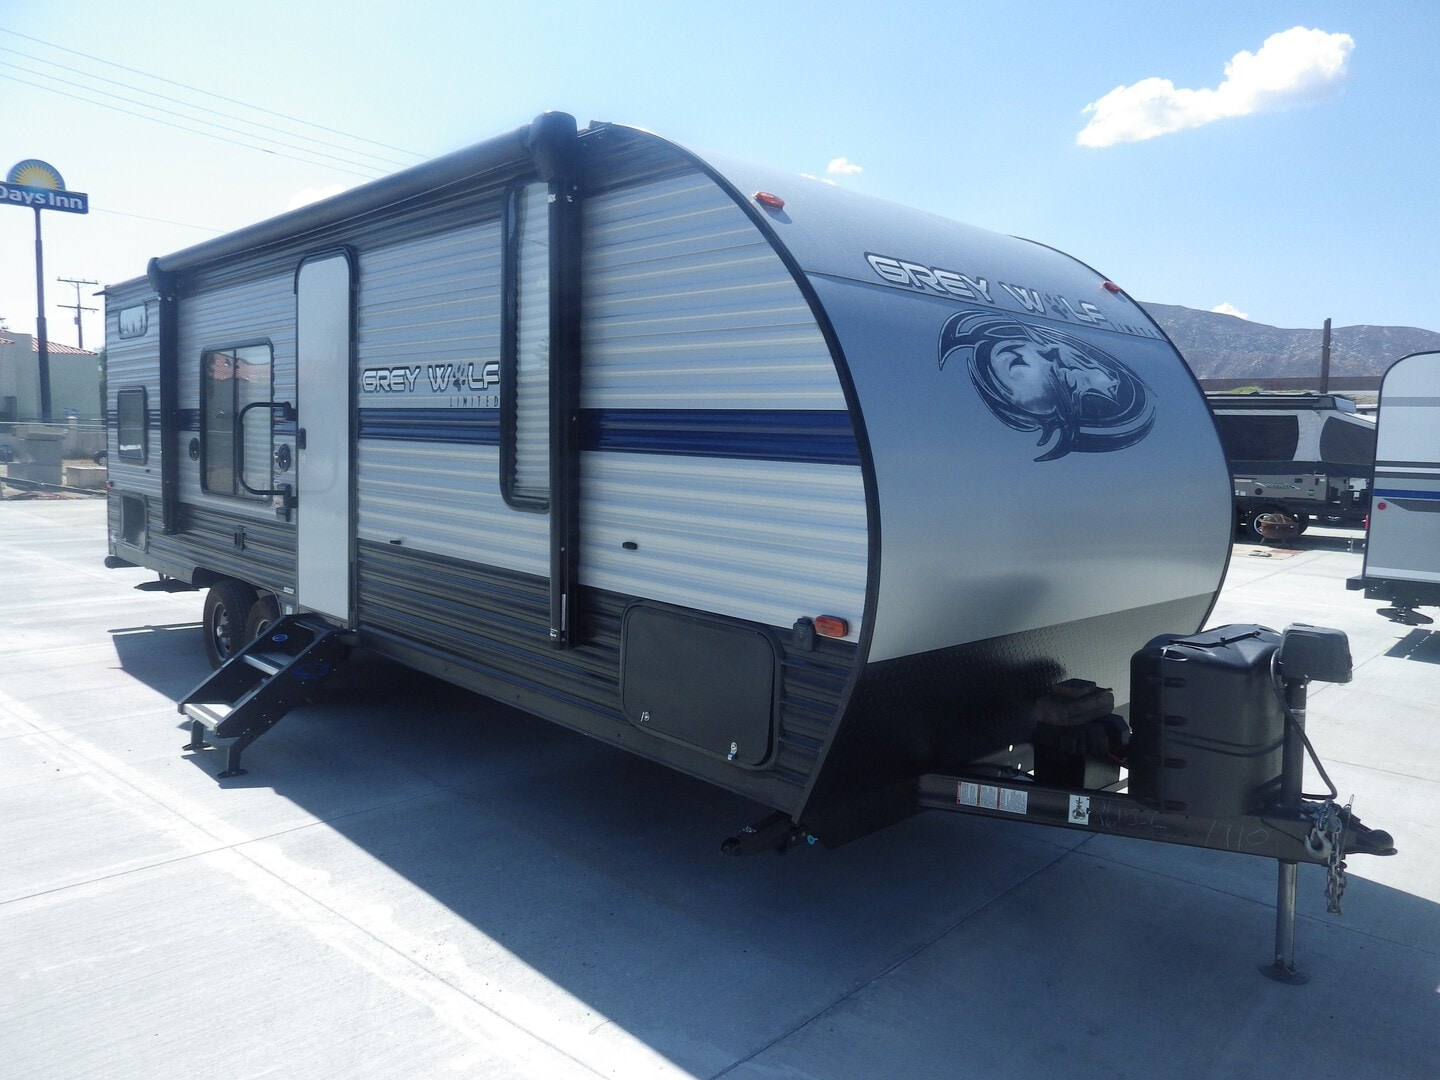 Used, 2020, Forest River, Cherokee Grey Wolf 26DJSE, Travel Trailers